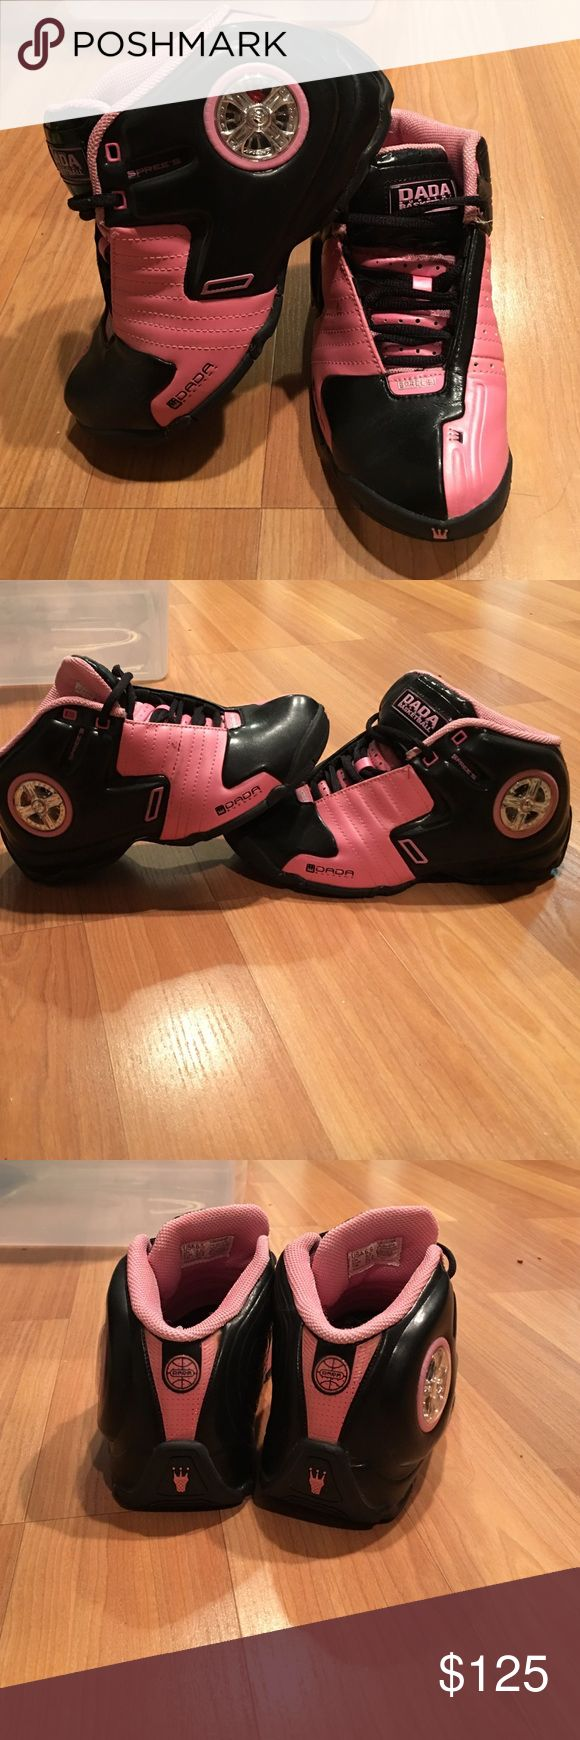 Dads spinning rims 6.5 Dads spinning rim as you walk sneakers limited edition women's 6.5 dada Shoes Sneakers